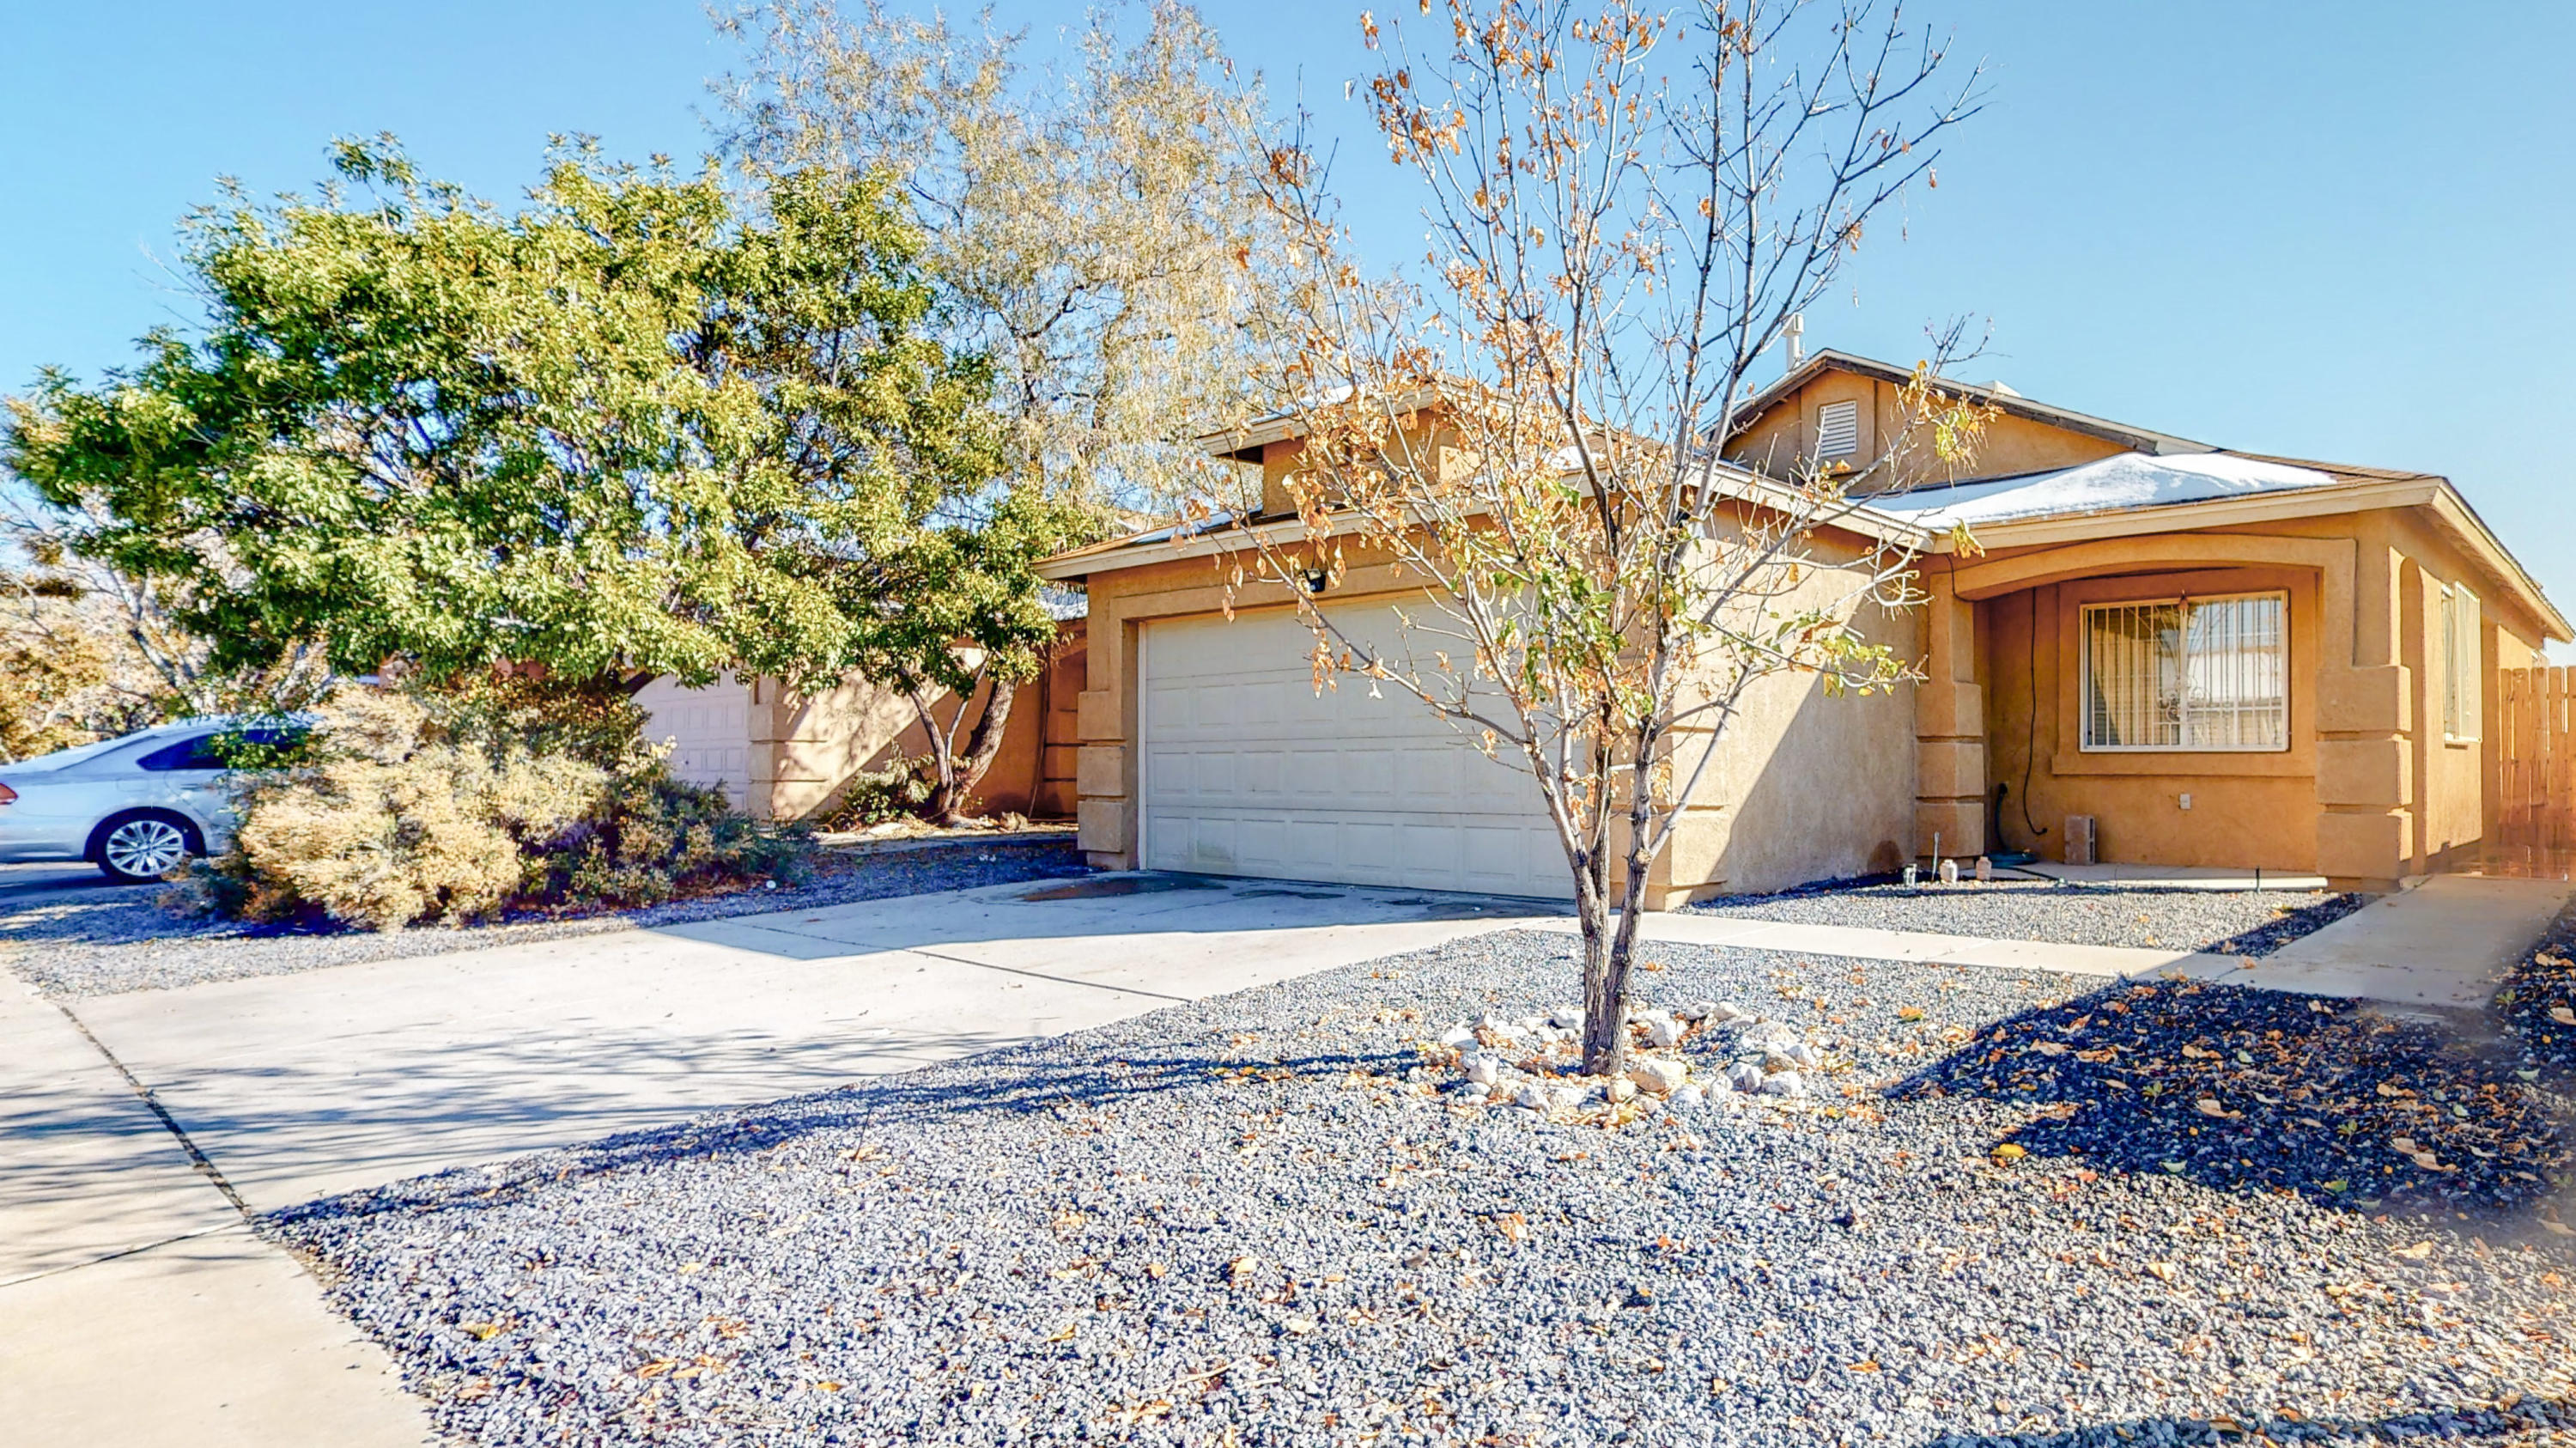 Move in Ready 3 Bed 2 bath home with an excelling floorplan and tons of natural light! Large Master Bedroom! Updated kitchen, New paint, and low maintenance backyard landscaping. Nice & private lot with no neighbors behind you.